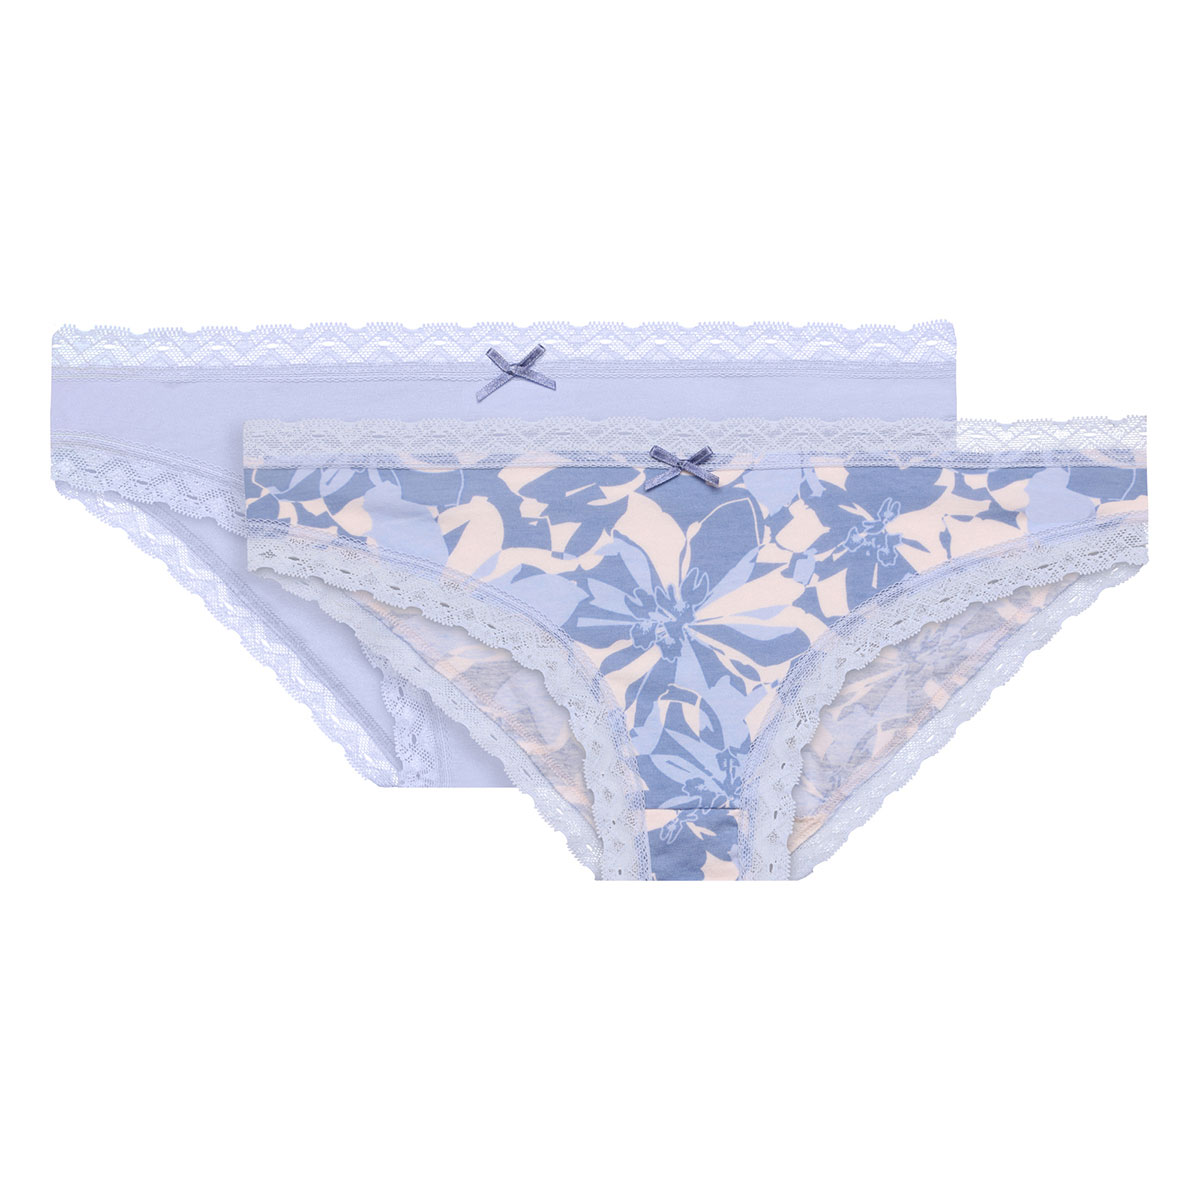 2 Pack blue floral briefs - Basic Cotton Fancy-PLAYTEX